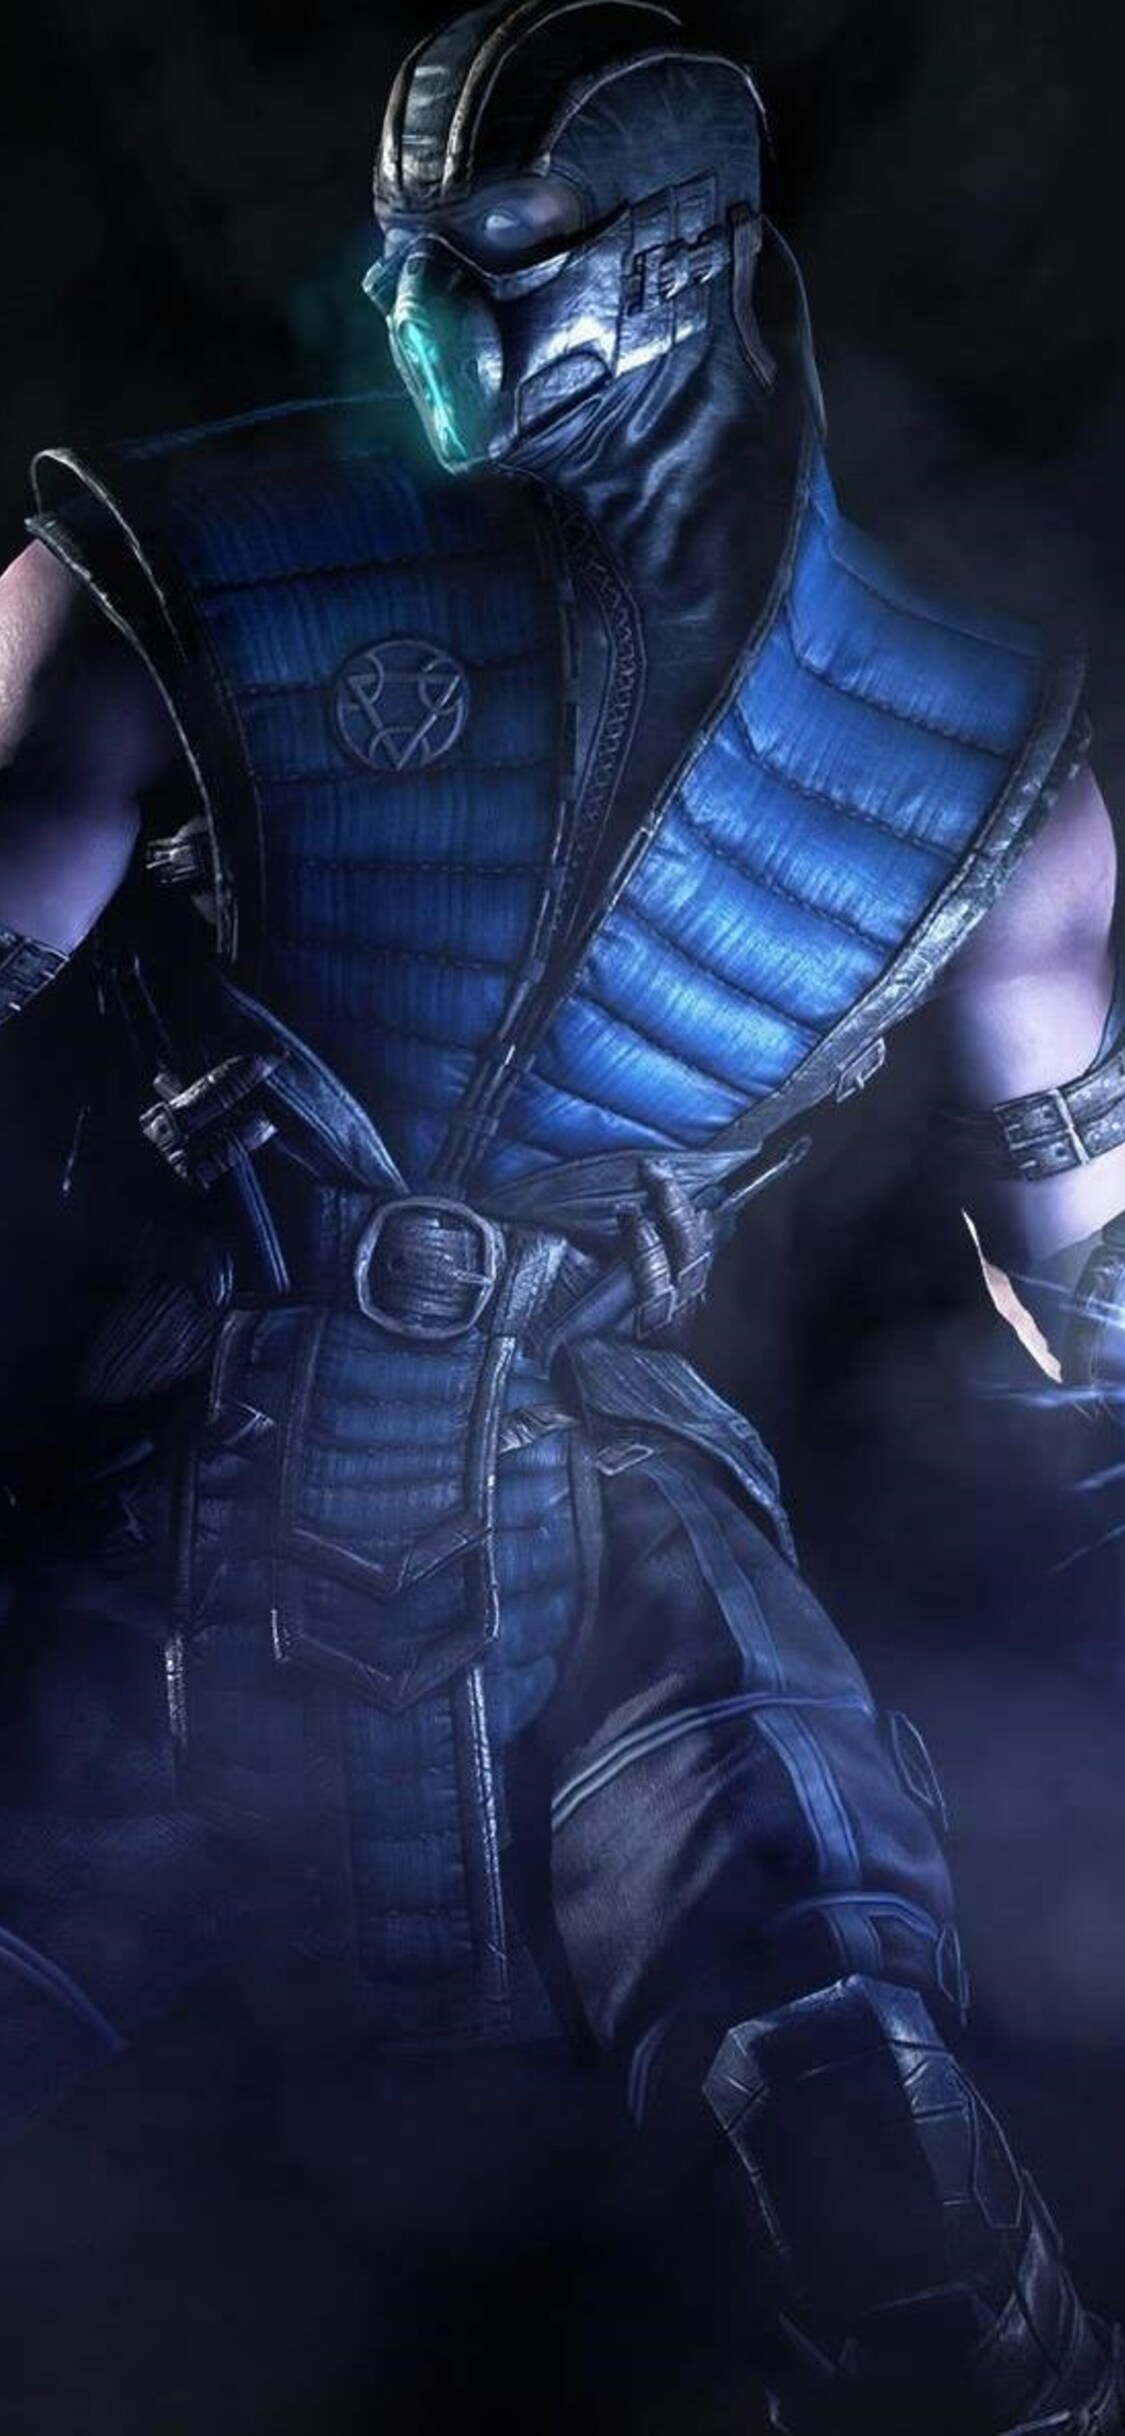 1125x2436 Sub Zero In Mortal Kombat Iphone Xs Iphone 10 Iphone X Hd